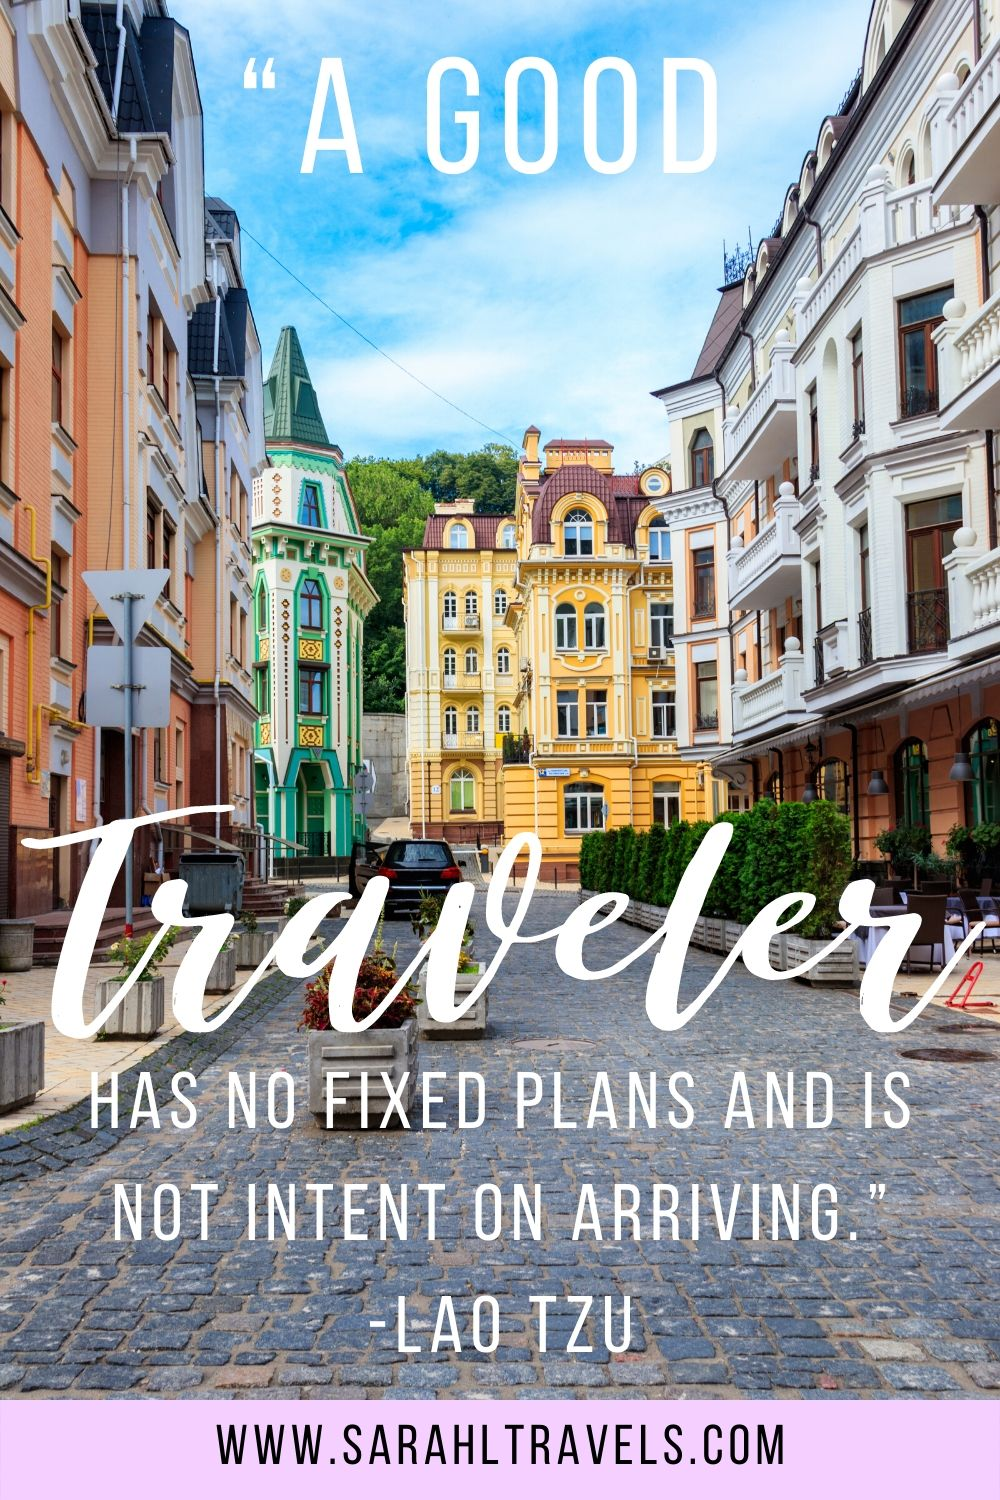 """City in Ukraine with quote """"A good traveler has no fixed plans and is not intent on arriving."""""""